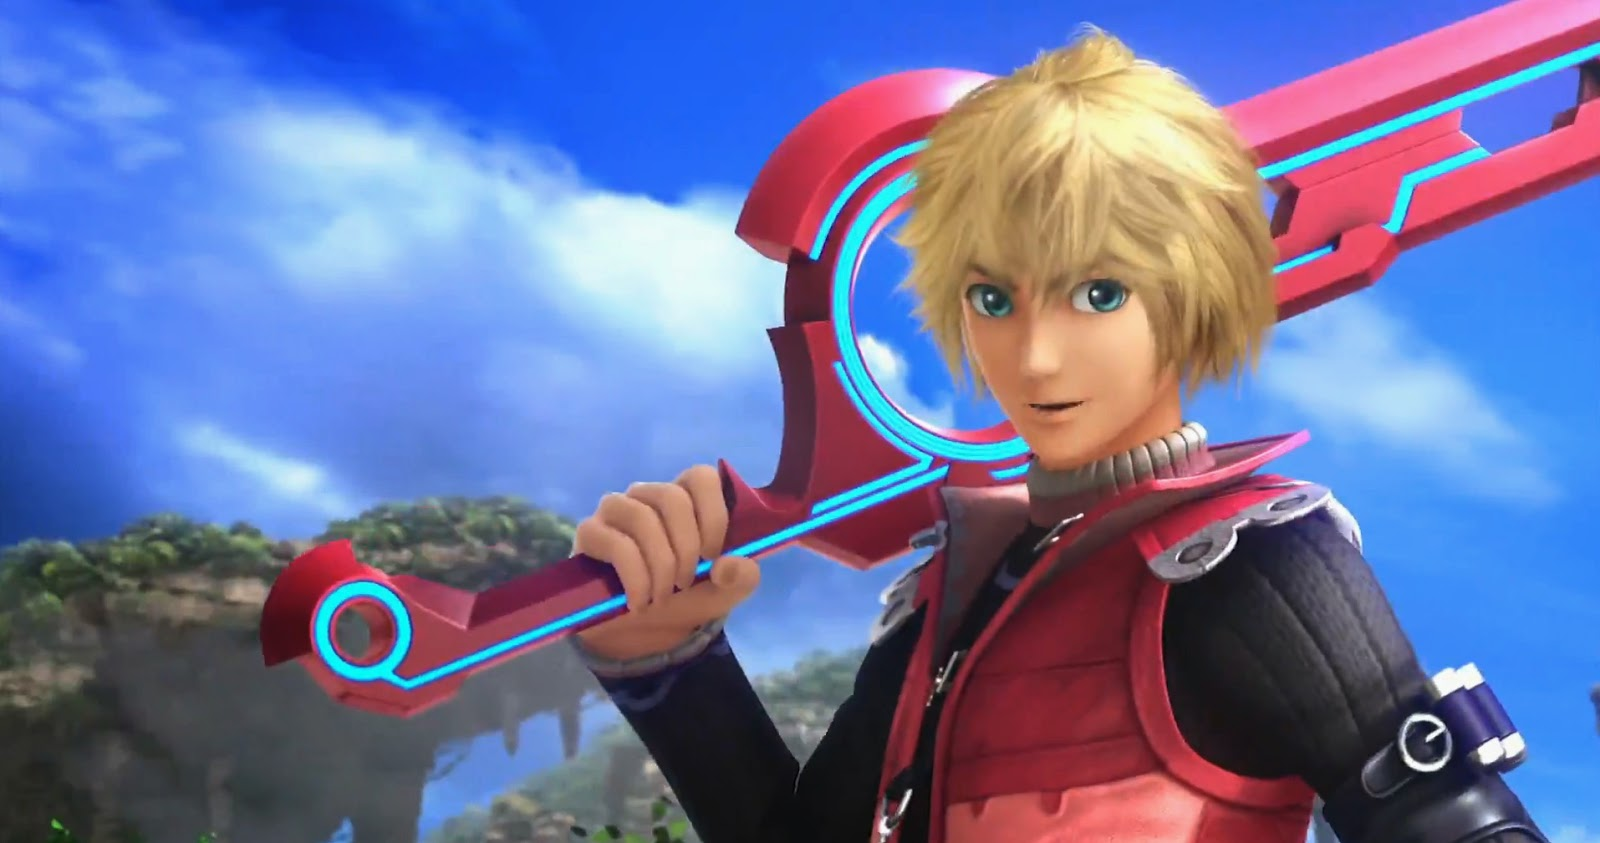 Reviews Views And Everything VG Shulk Revealed For SSB4